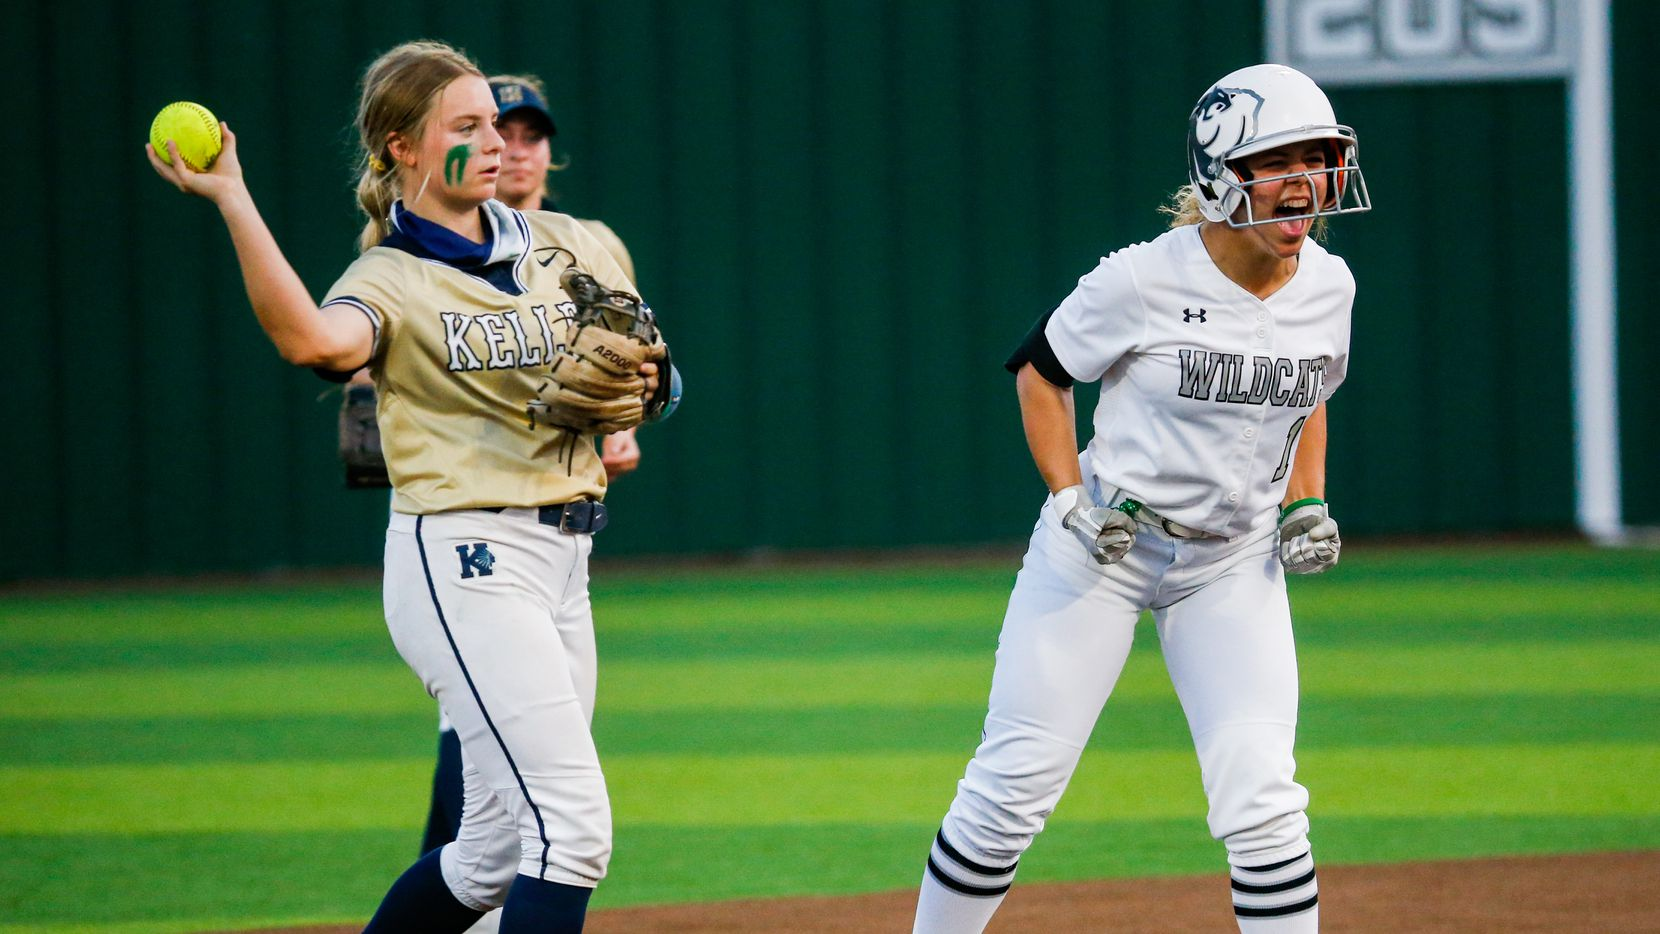 Denton Guyer's Avery Jefferson (1) celebrates a second base hit and her team's first run against Keller during the third inning of a non-district softball game in Denton on Tuesday, March 30, 2021.